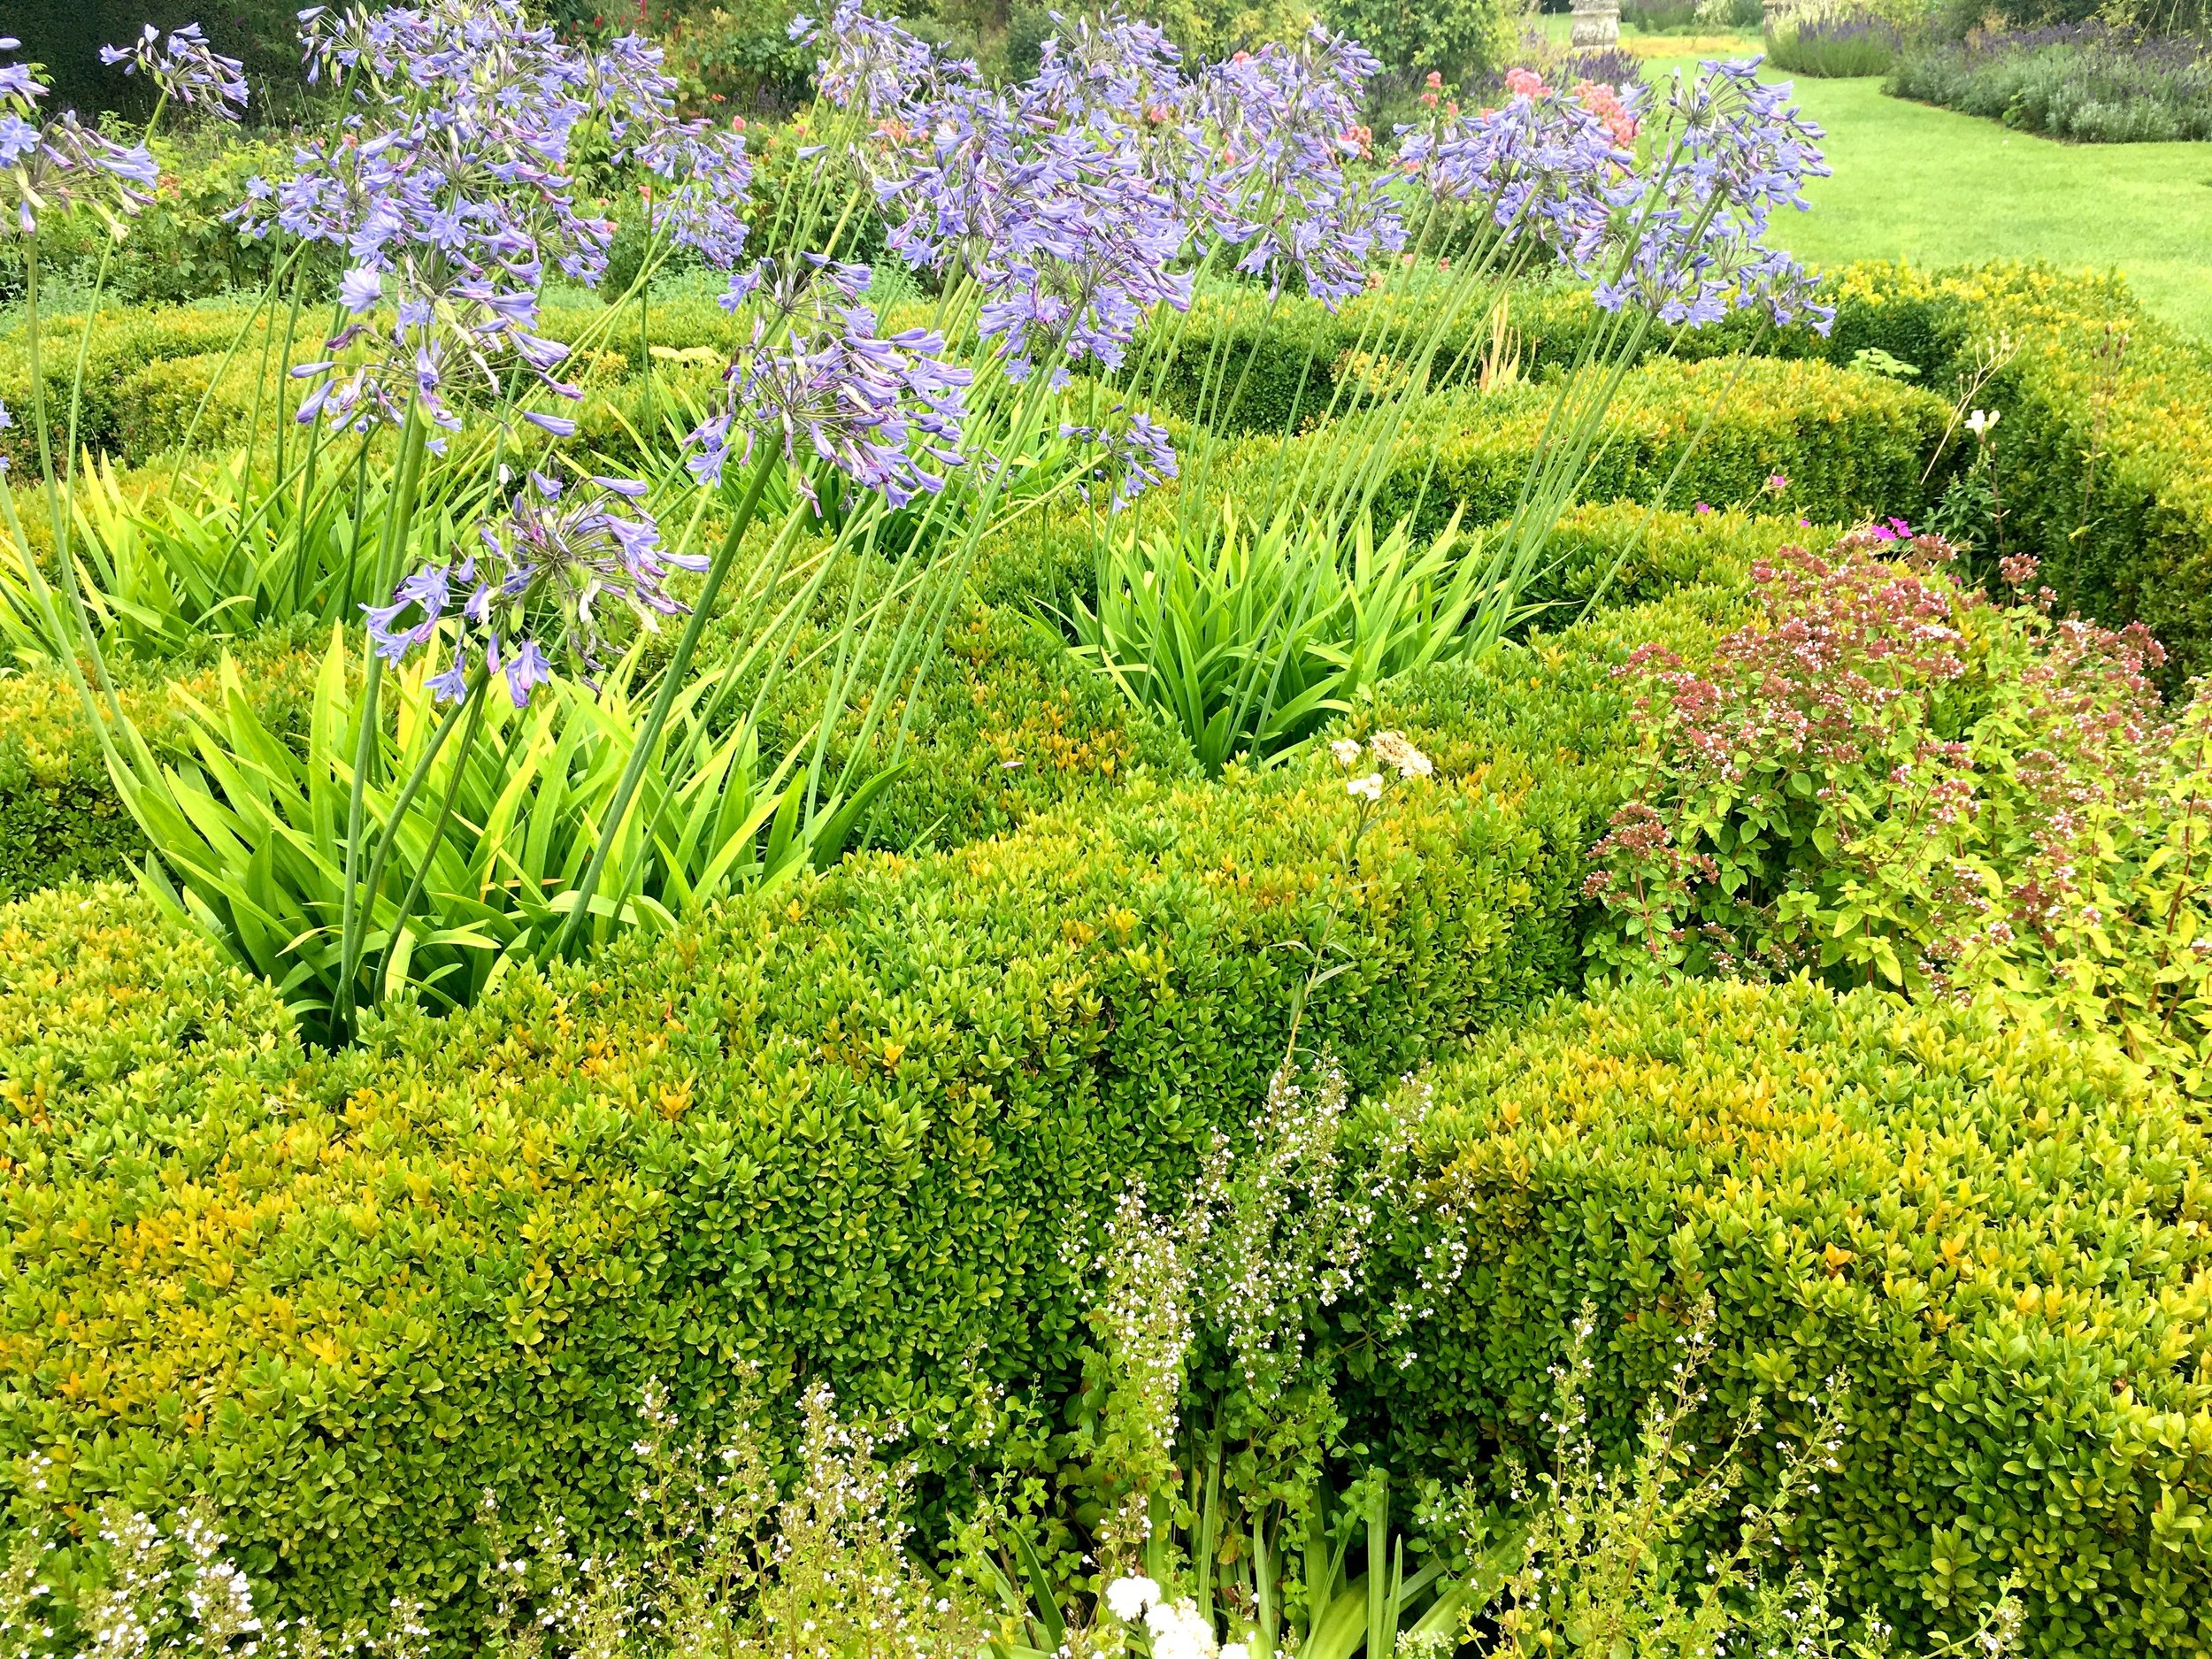 agapanthus in the knots in the knot garden at Helmington Hall